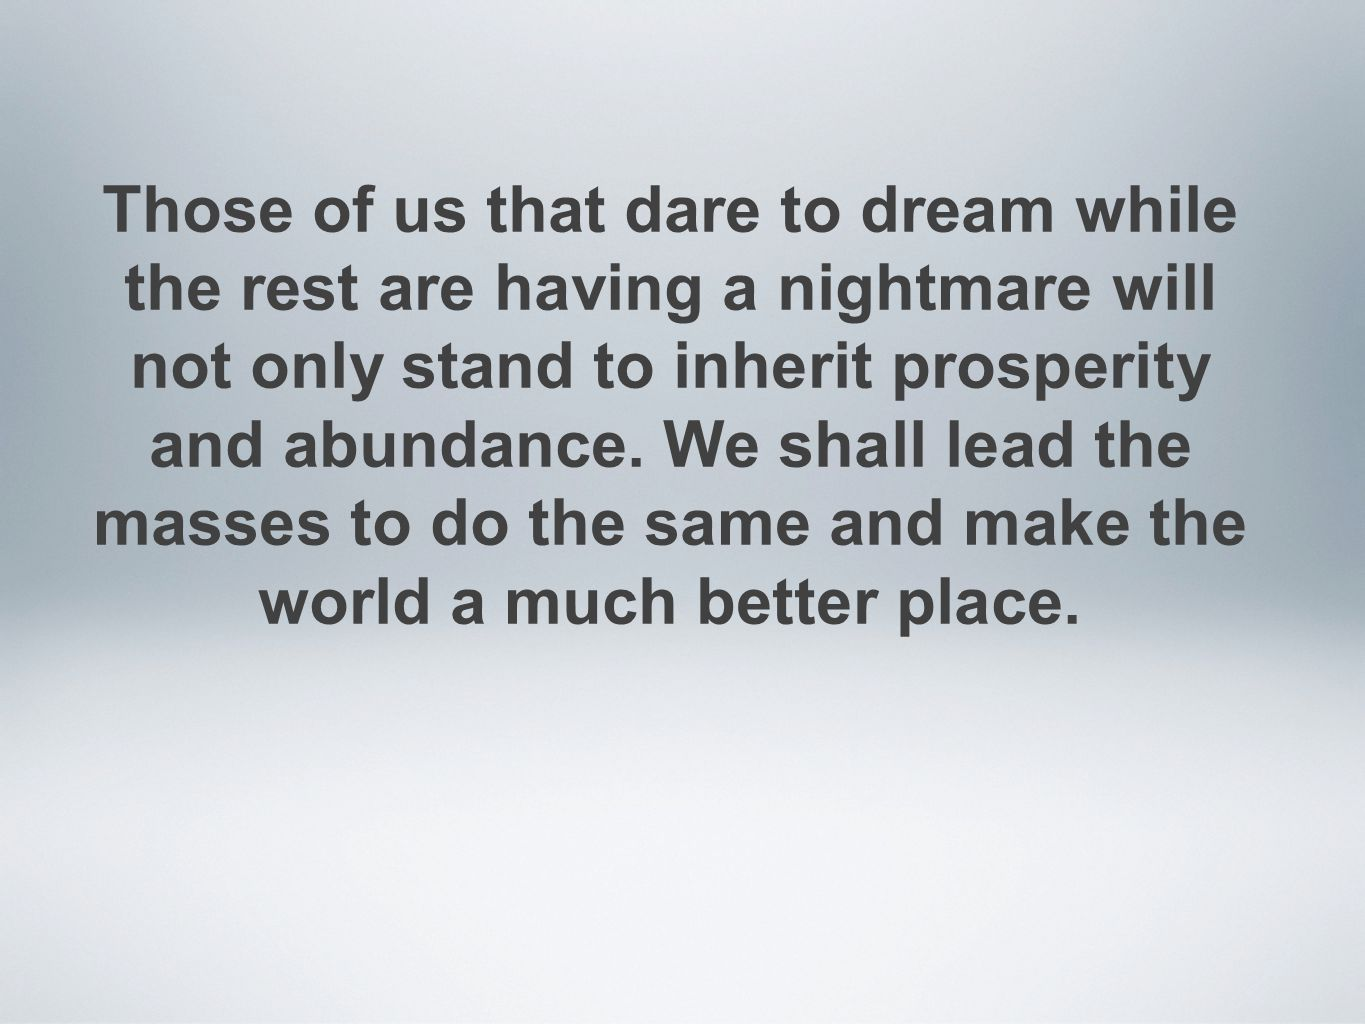 Those of us that dare to dream while the rest are having a nightmare will not only stand to inherit prosperity and abundance. We shall lead the masses